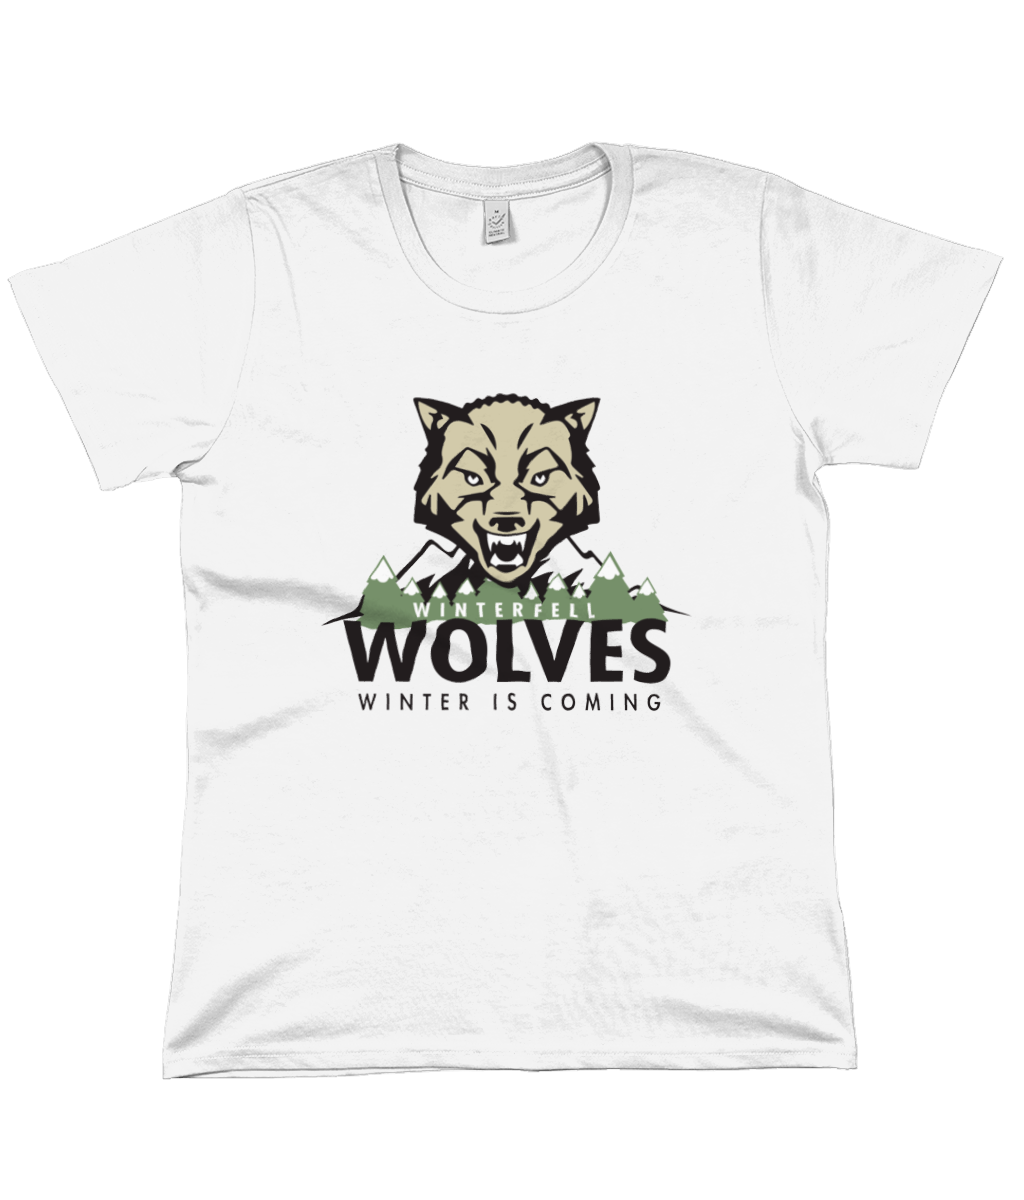 Game of Thrones: Winterfell Wolves Women's Flowy Tee